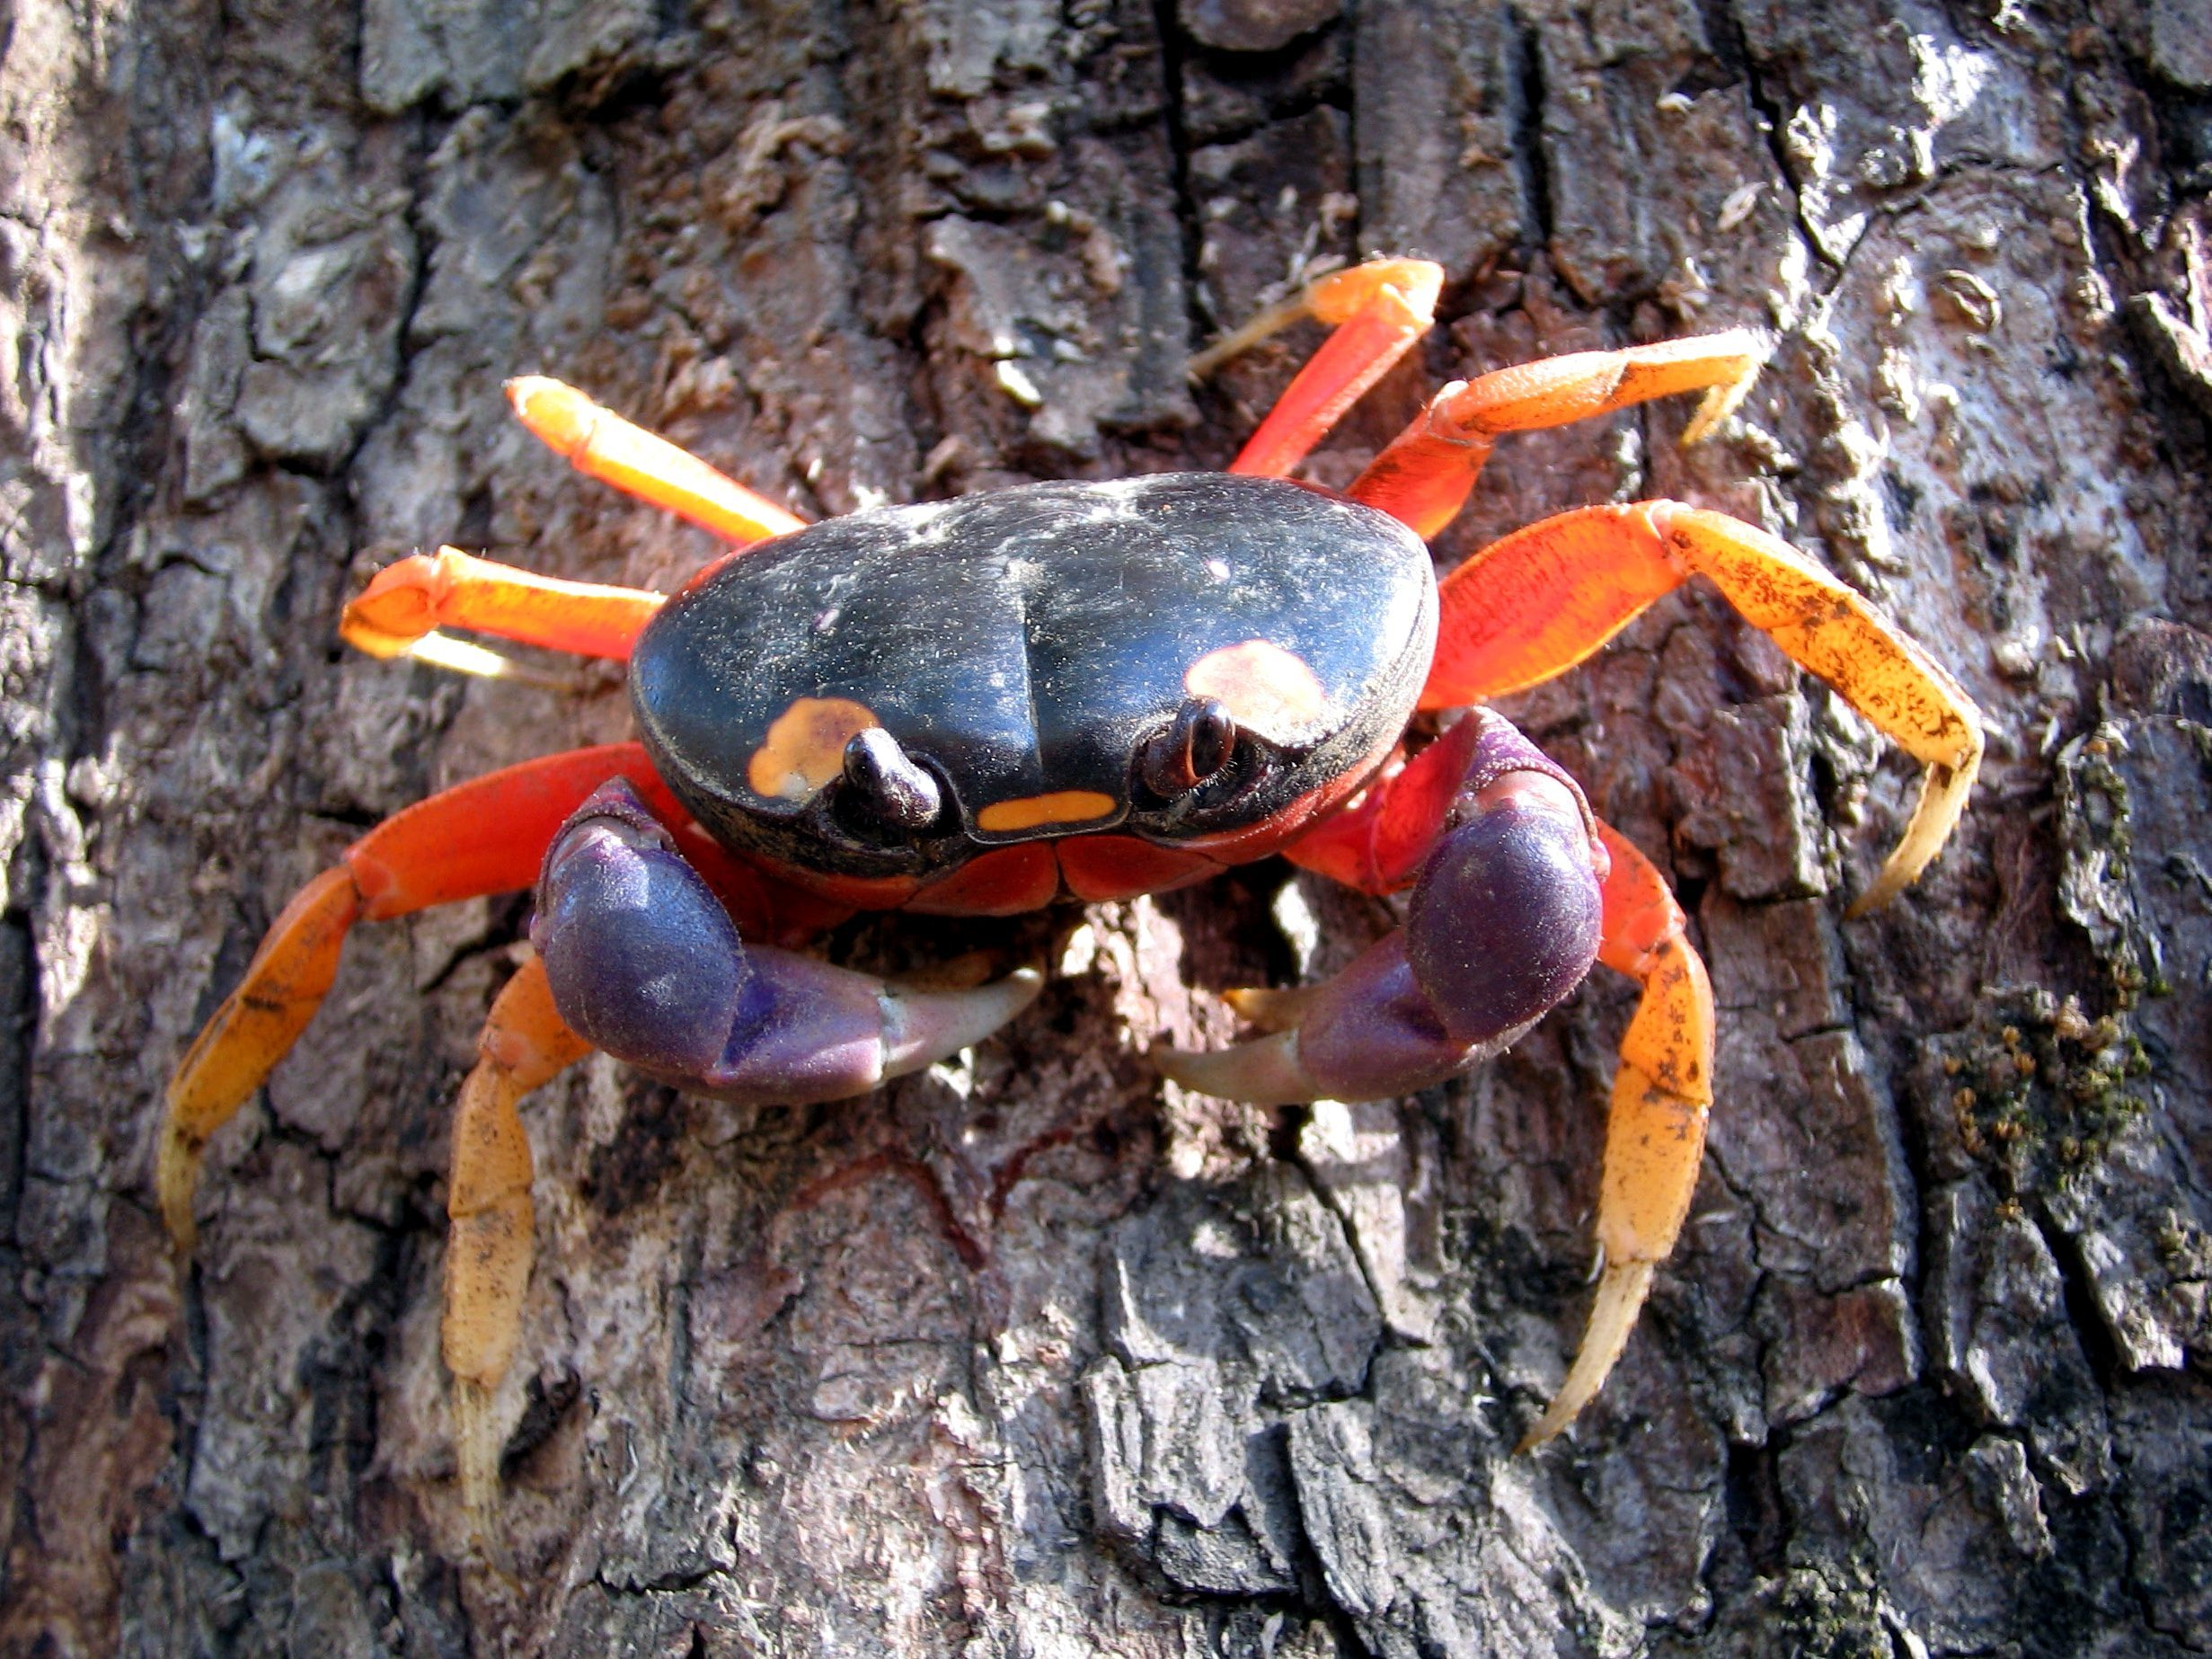 Free picture: Halloween moon crab, animal, crab